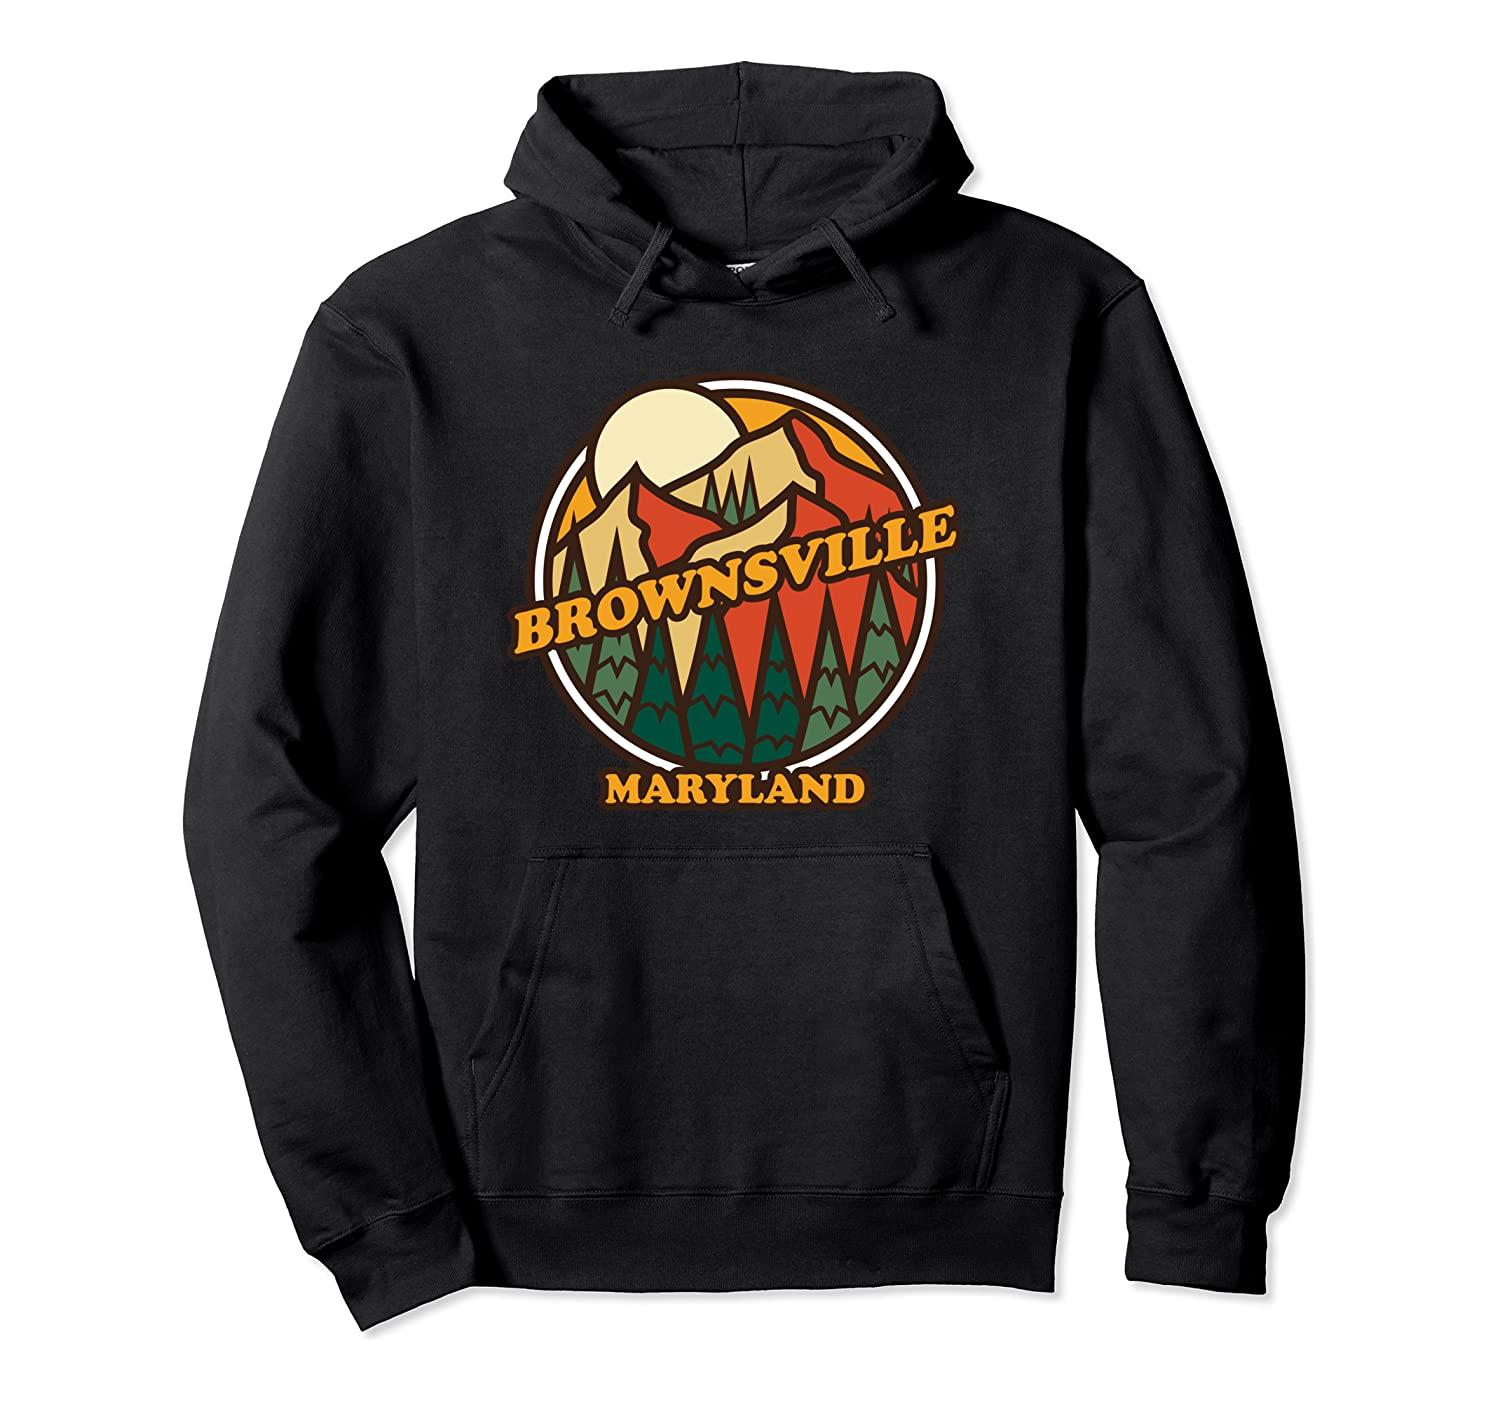 Vintage Brownsville, Maryland Mountain Hiking Souvenir Print Pullover Hoodie Unisex Size S-5XL with Color Black/Grey/Navy/Royal Blue/Dark He